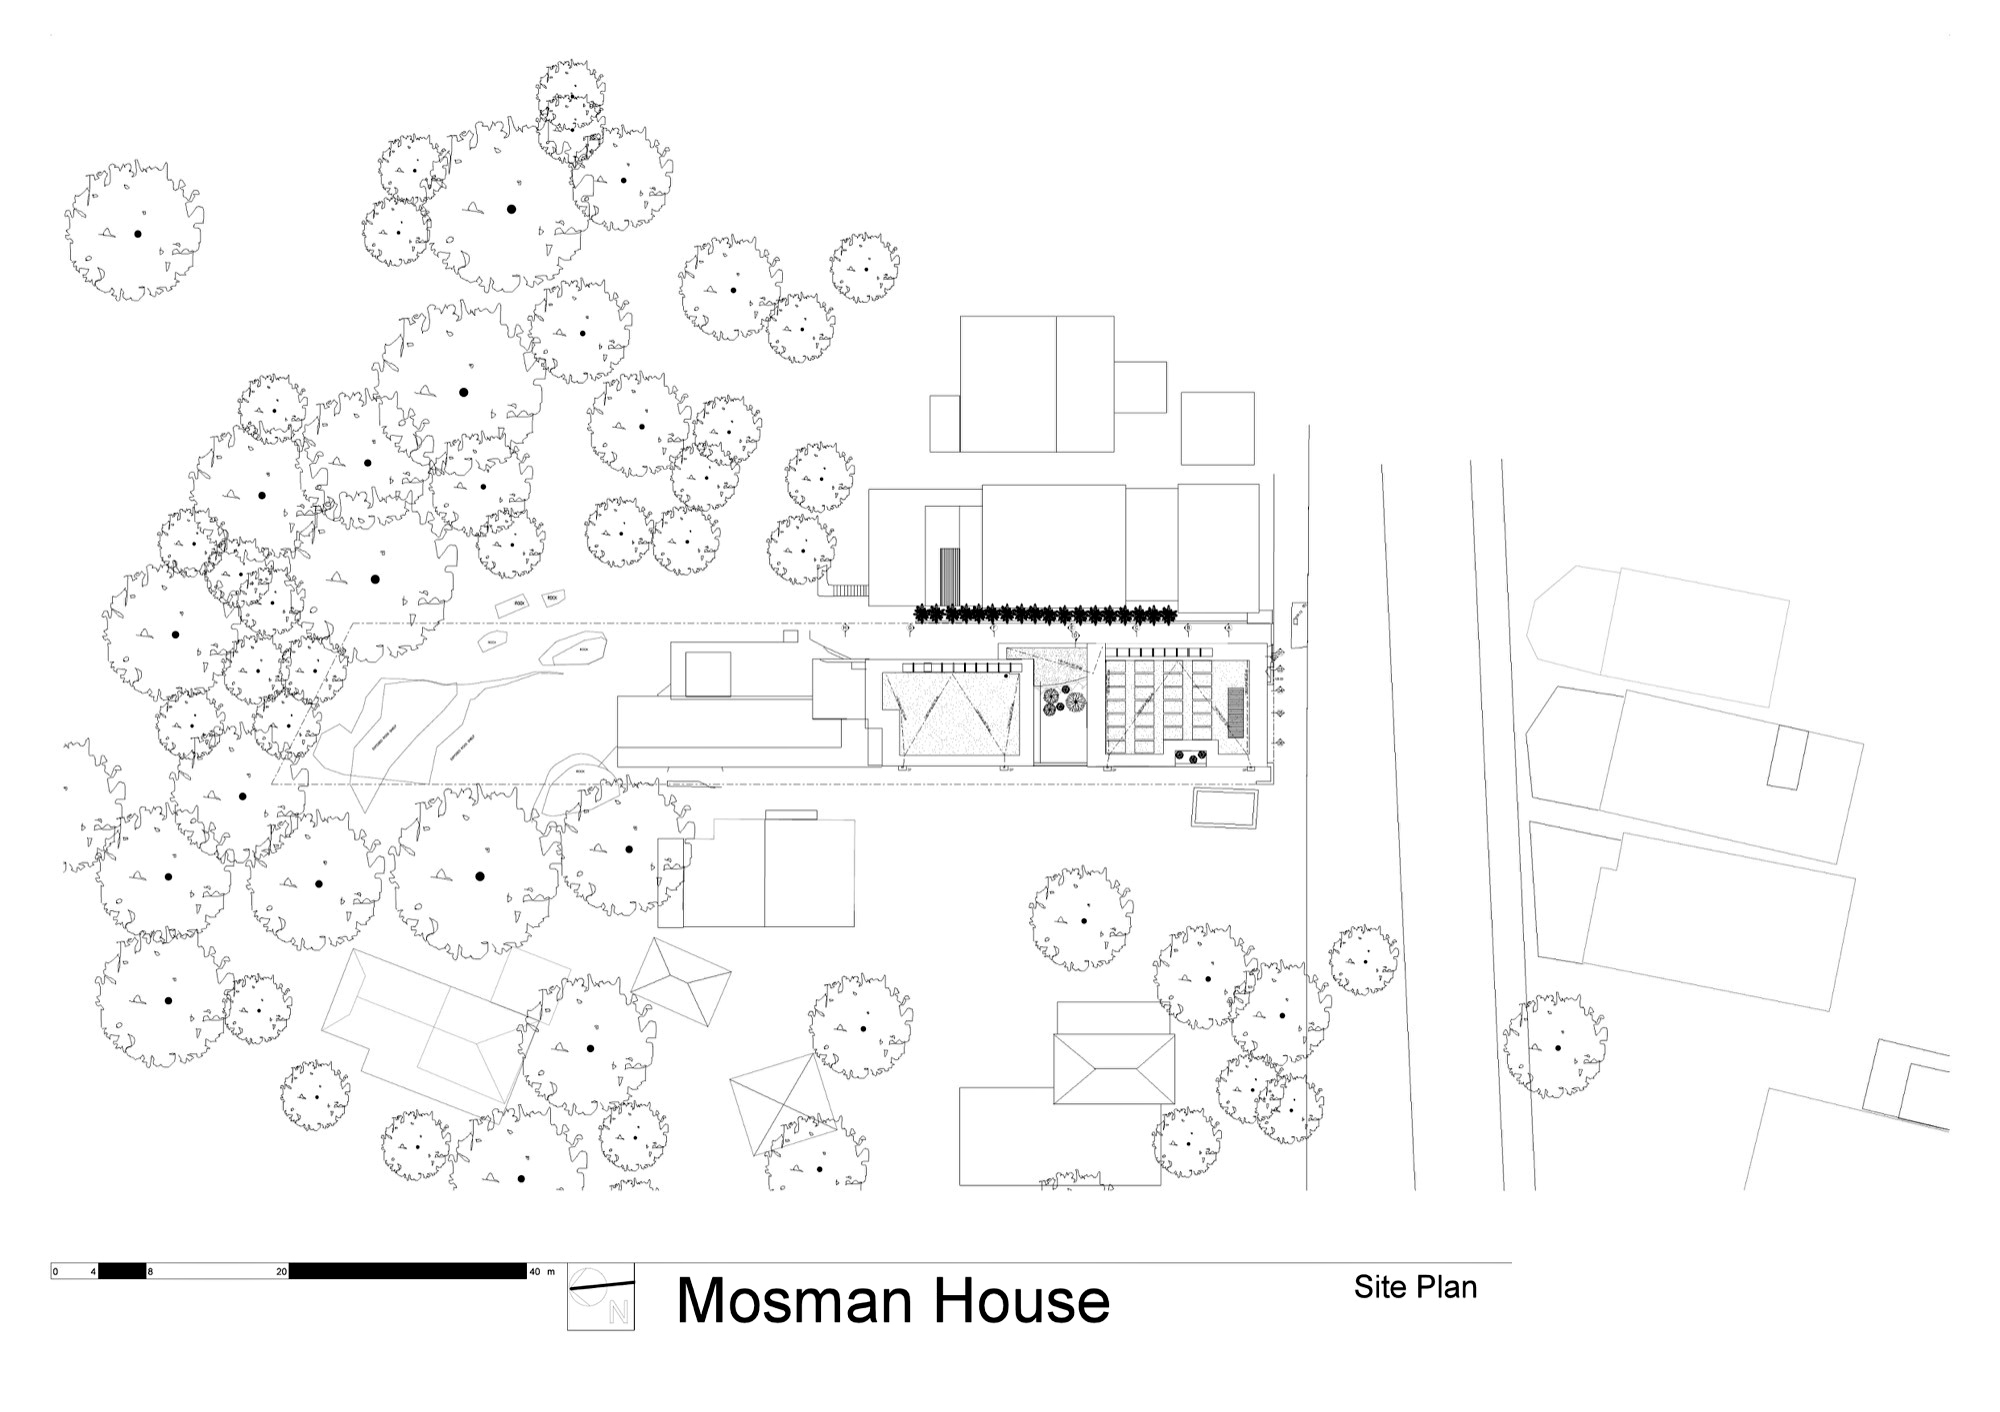 Site Plan - Kitchen Level Floor Plan - Mosman House Residence - Sydney, New South Wales, Australia